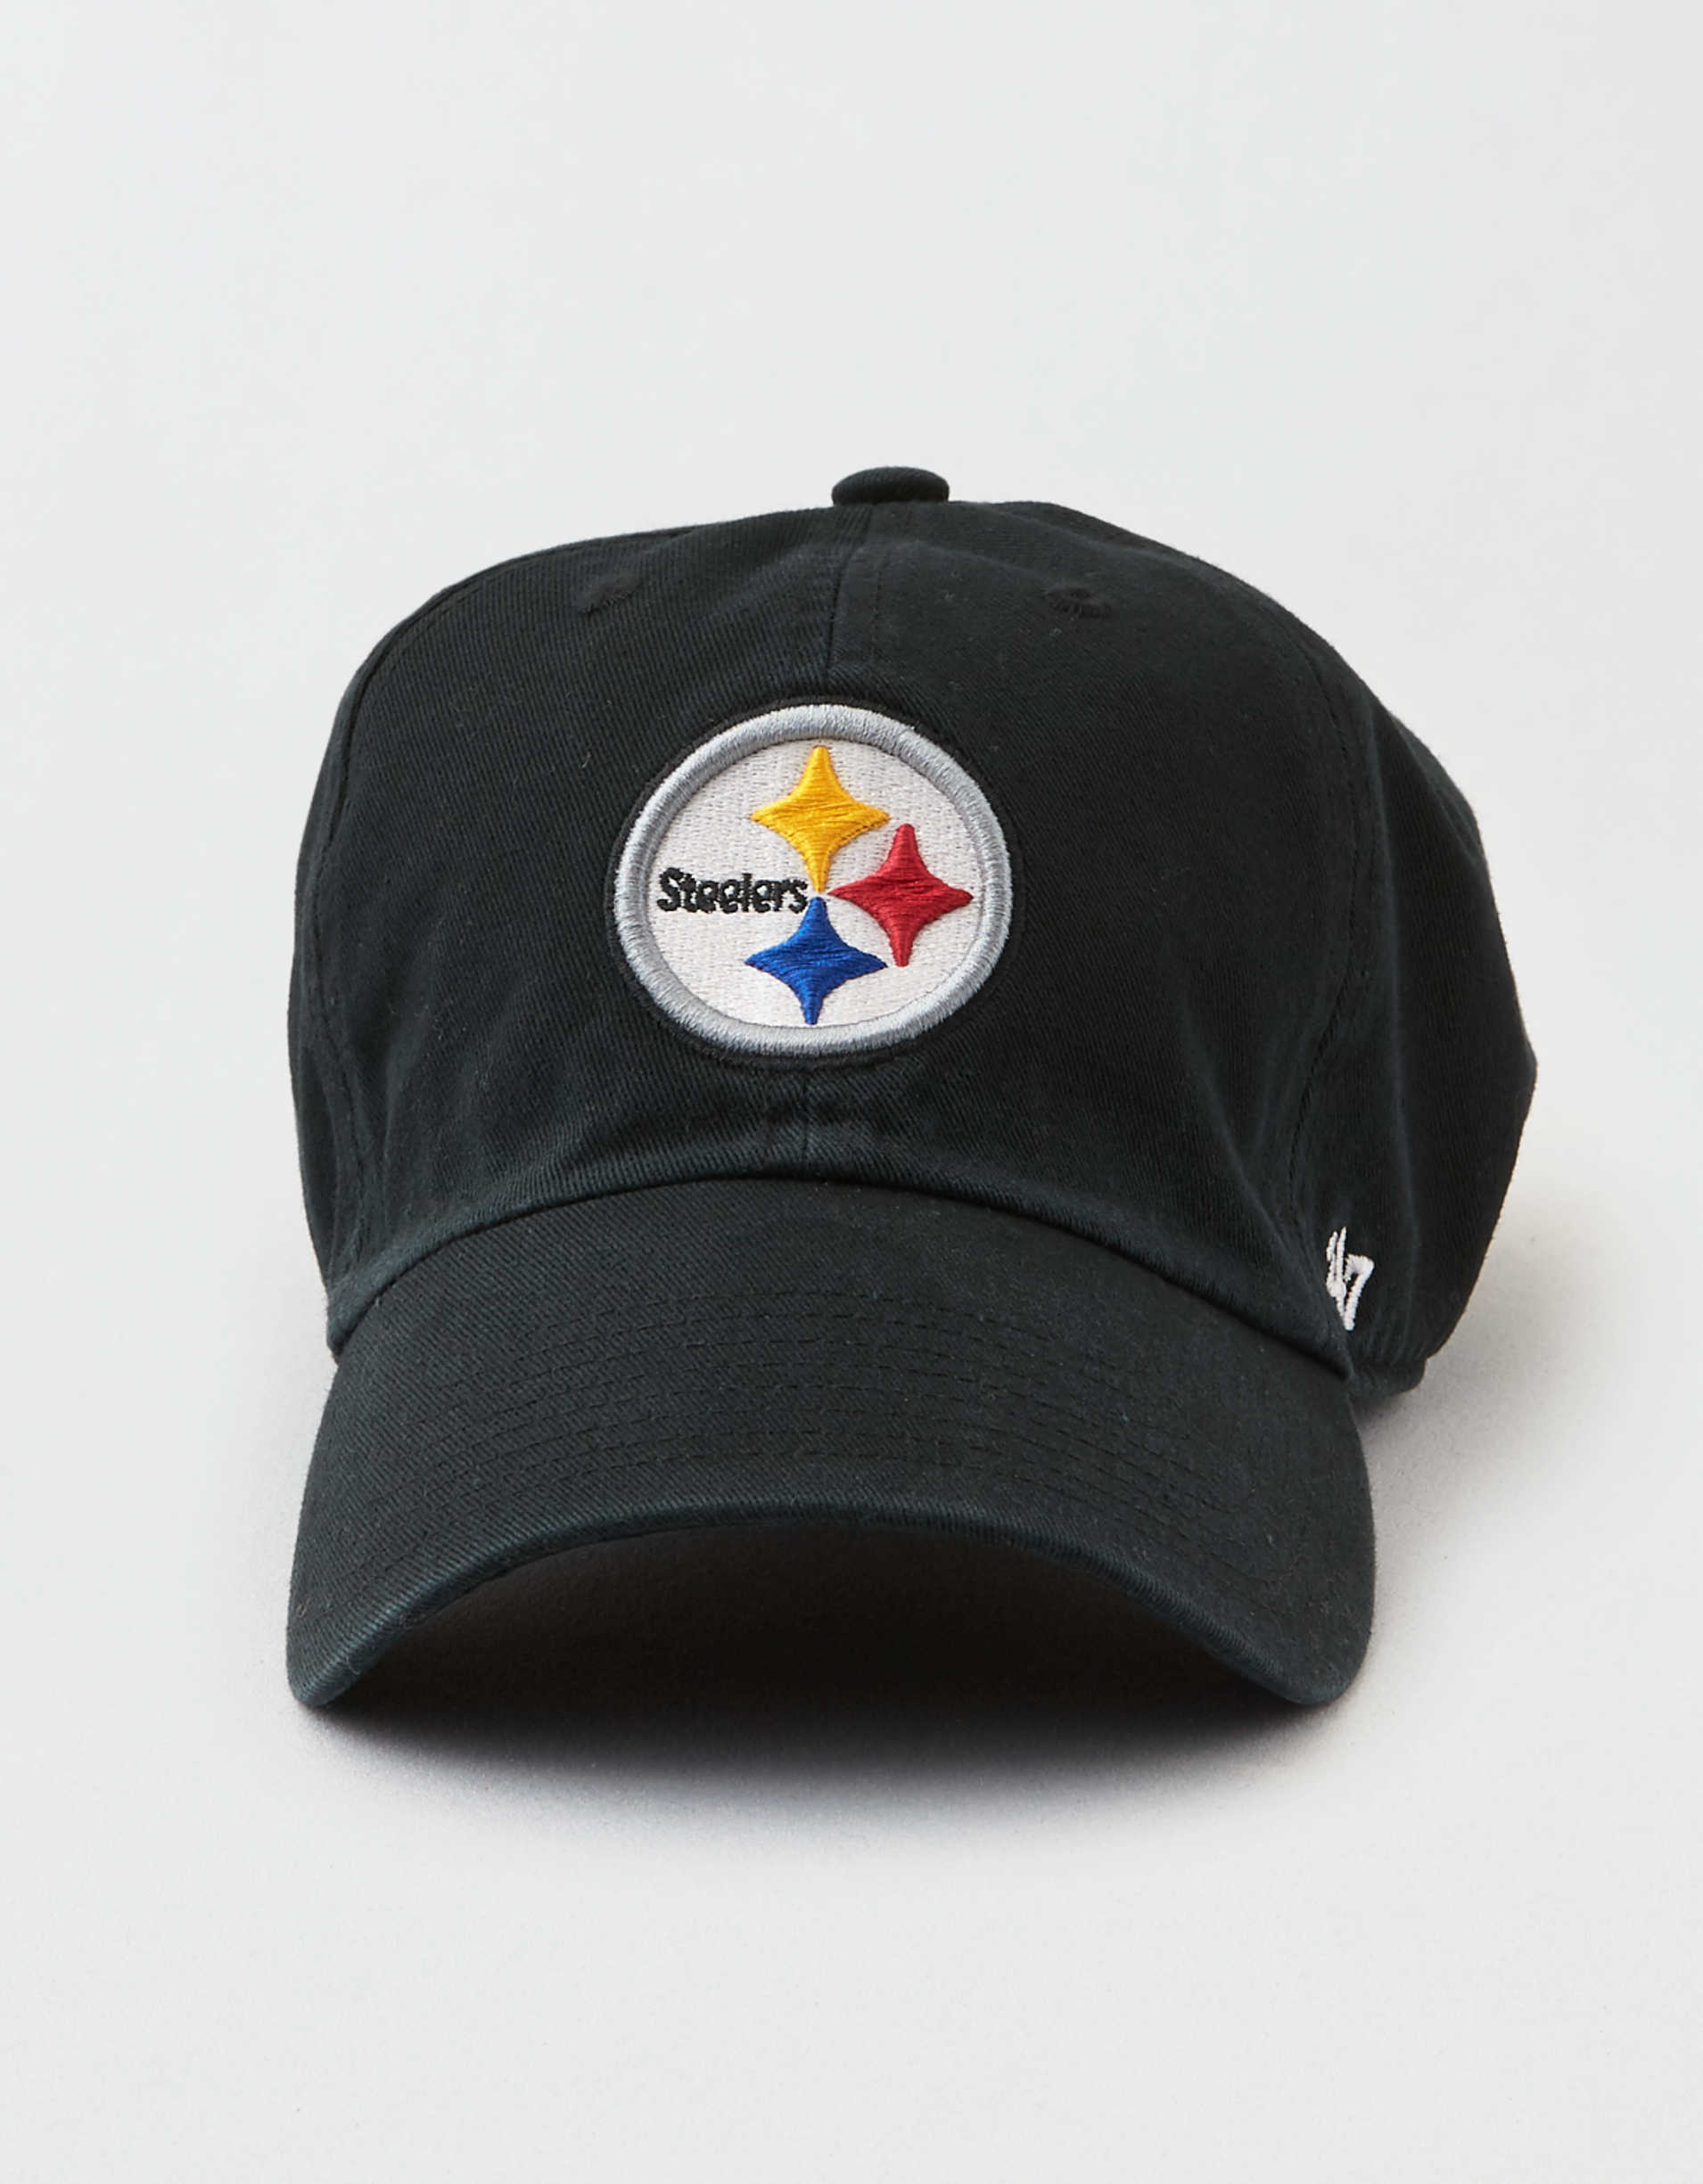 '47 Brand Steelers Baseball Cap